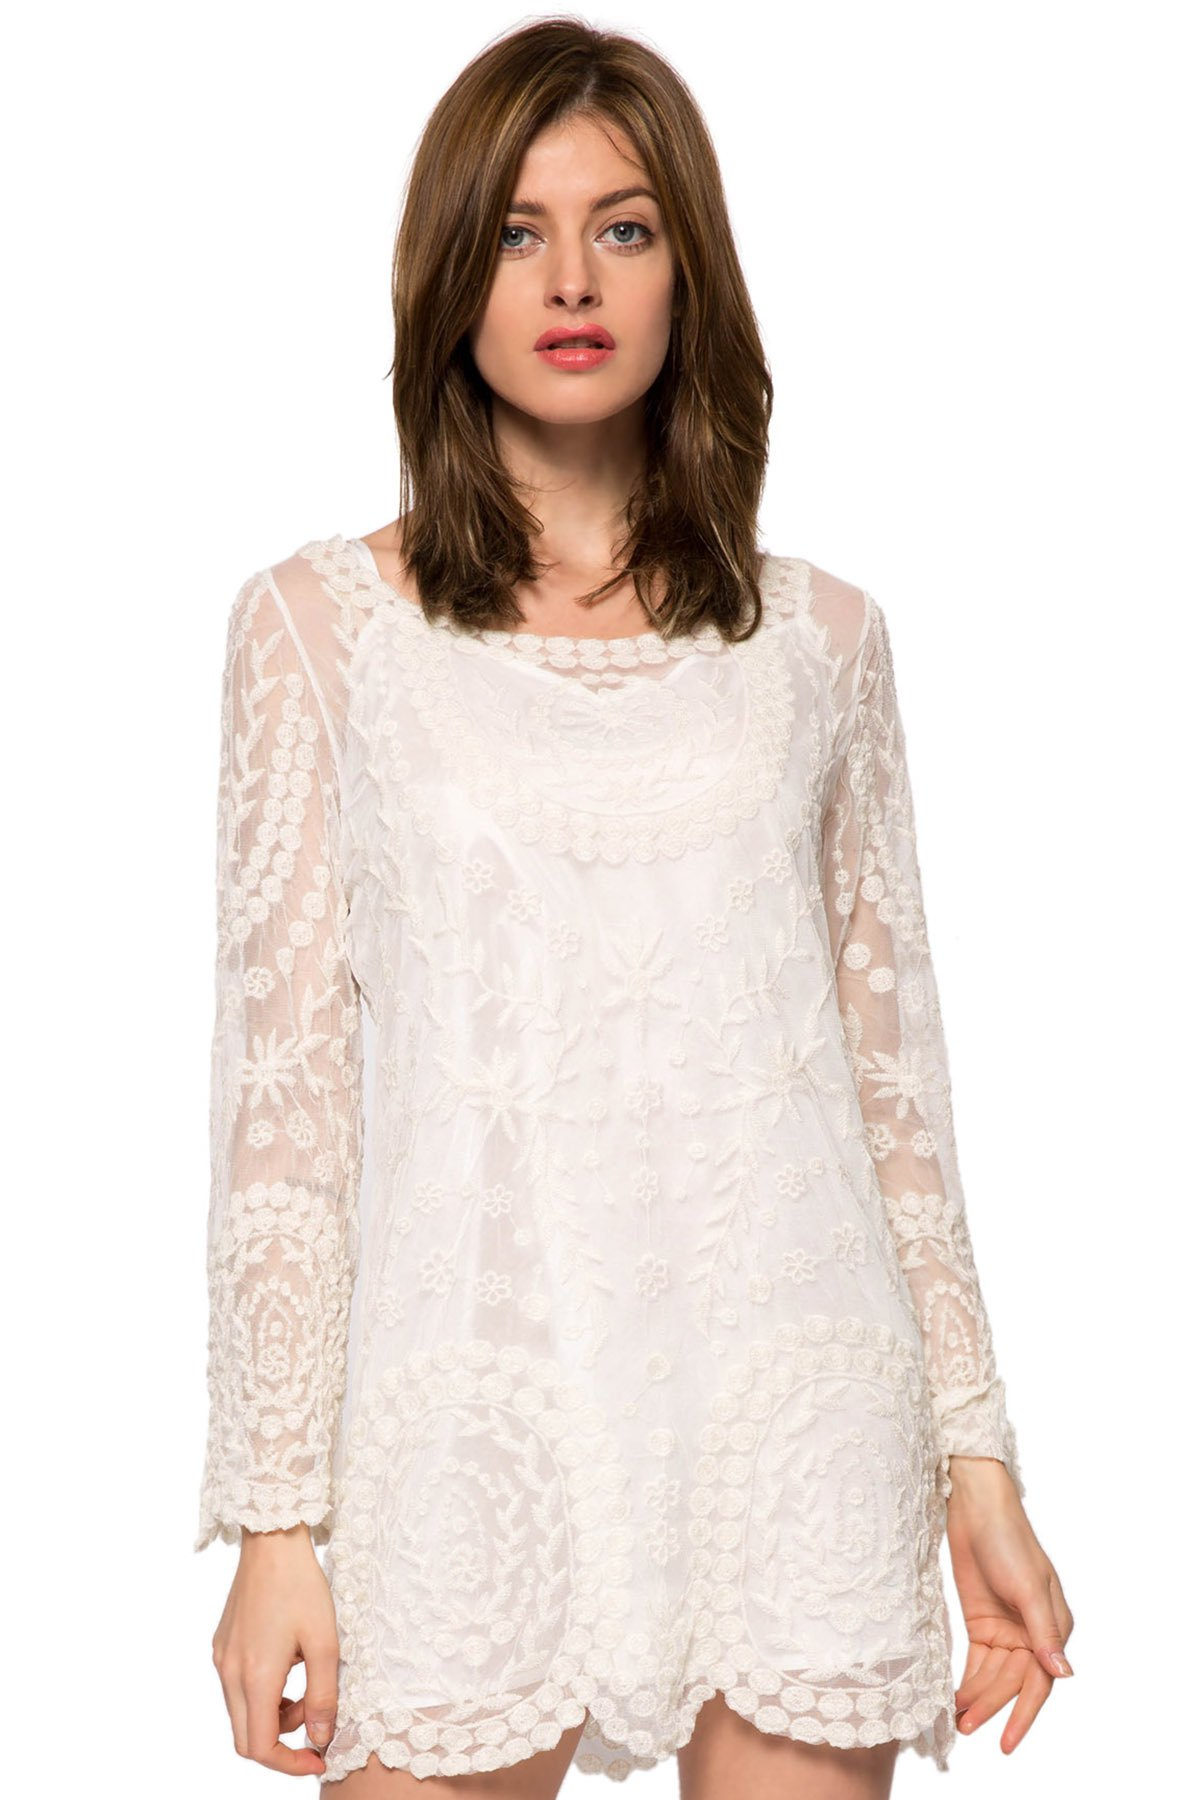 Scoop Collar Long Sleeve Lace Embroidery Dress